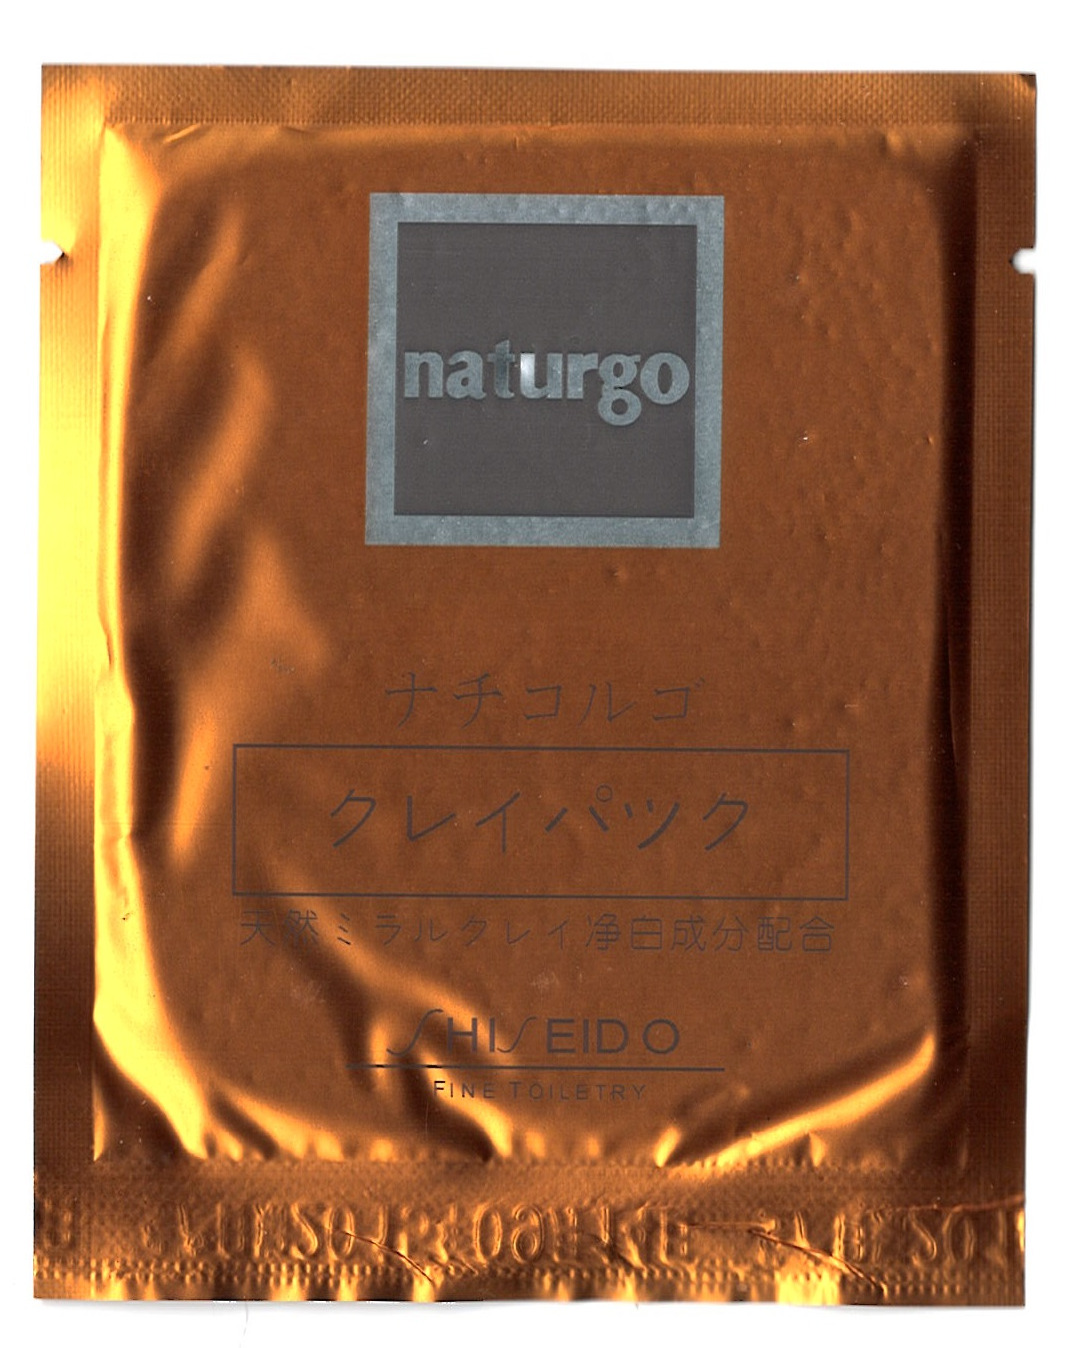 Shiseido Naturgo Black Mask Package Of 6 New Auth 899 Picclick Masker 1 3only 3 Available